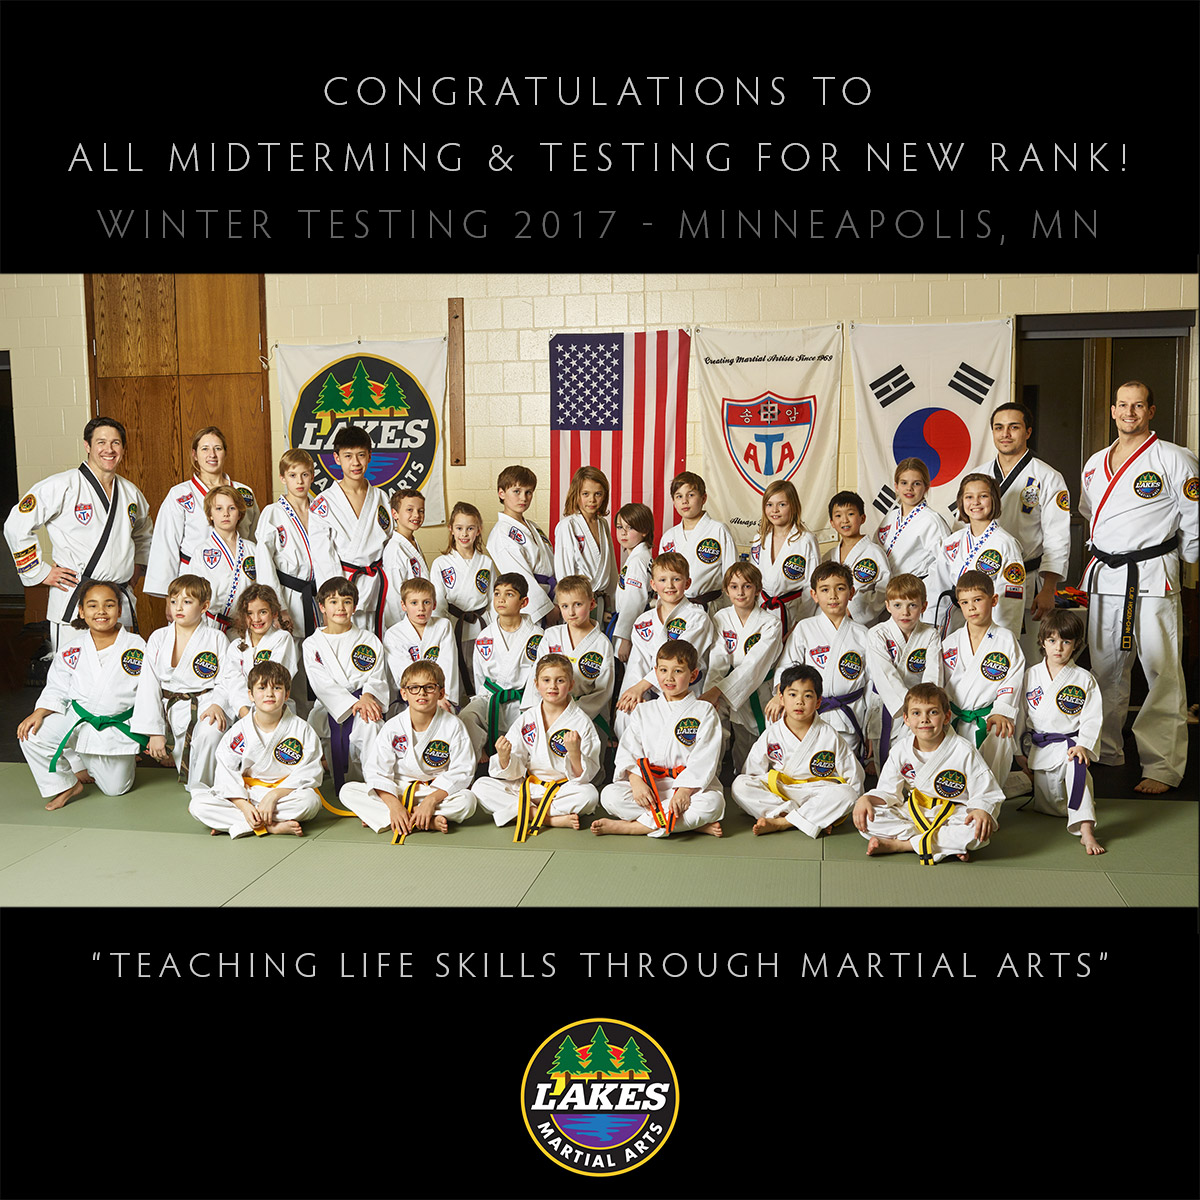 Karate Kids and instructors display confidence and self-esteem in our class portrait after testing.